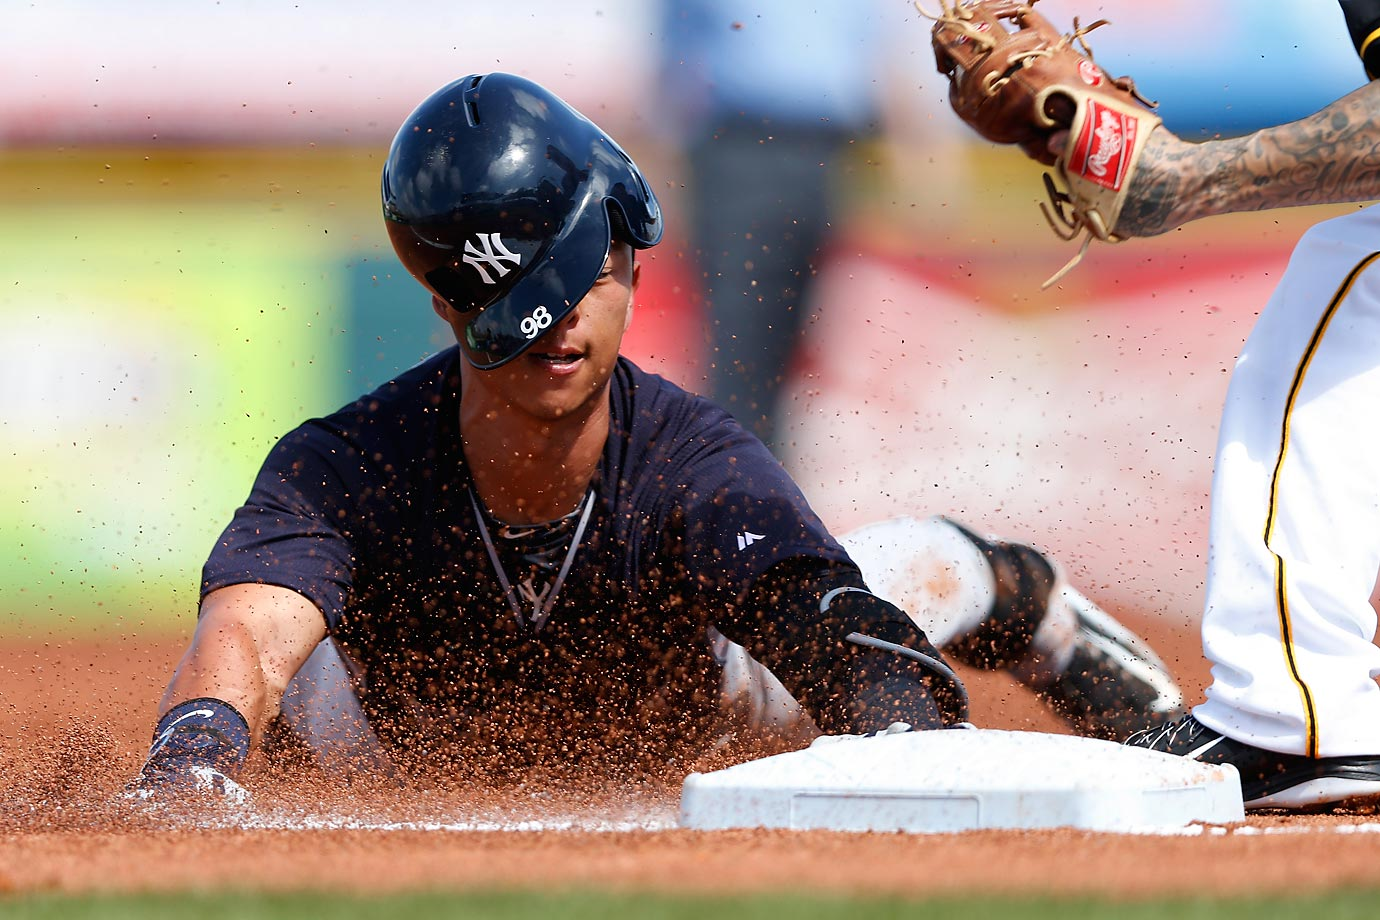 Rob Refsnyder of the Yankees gets tagged out while trying to reach third base during a spring training game against the Pittsburgh Pirates.